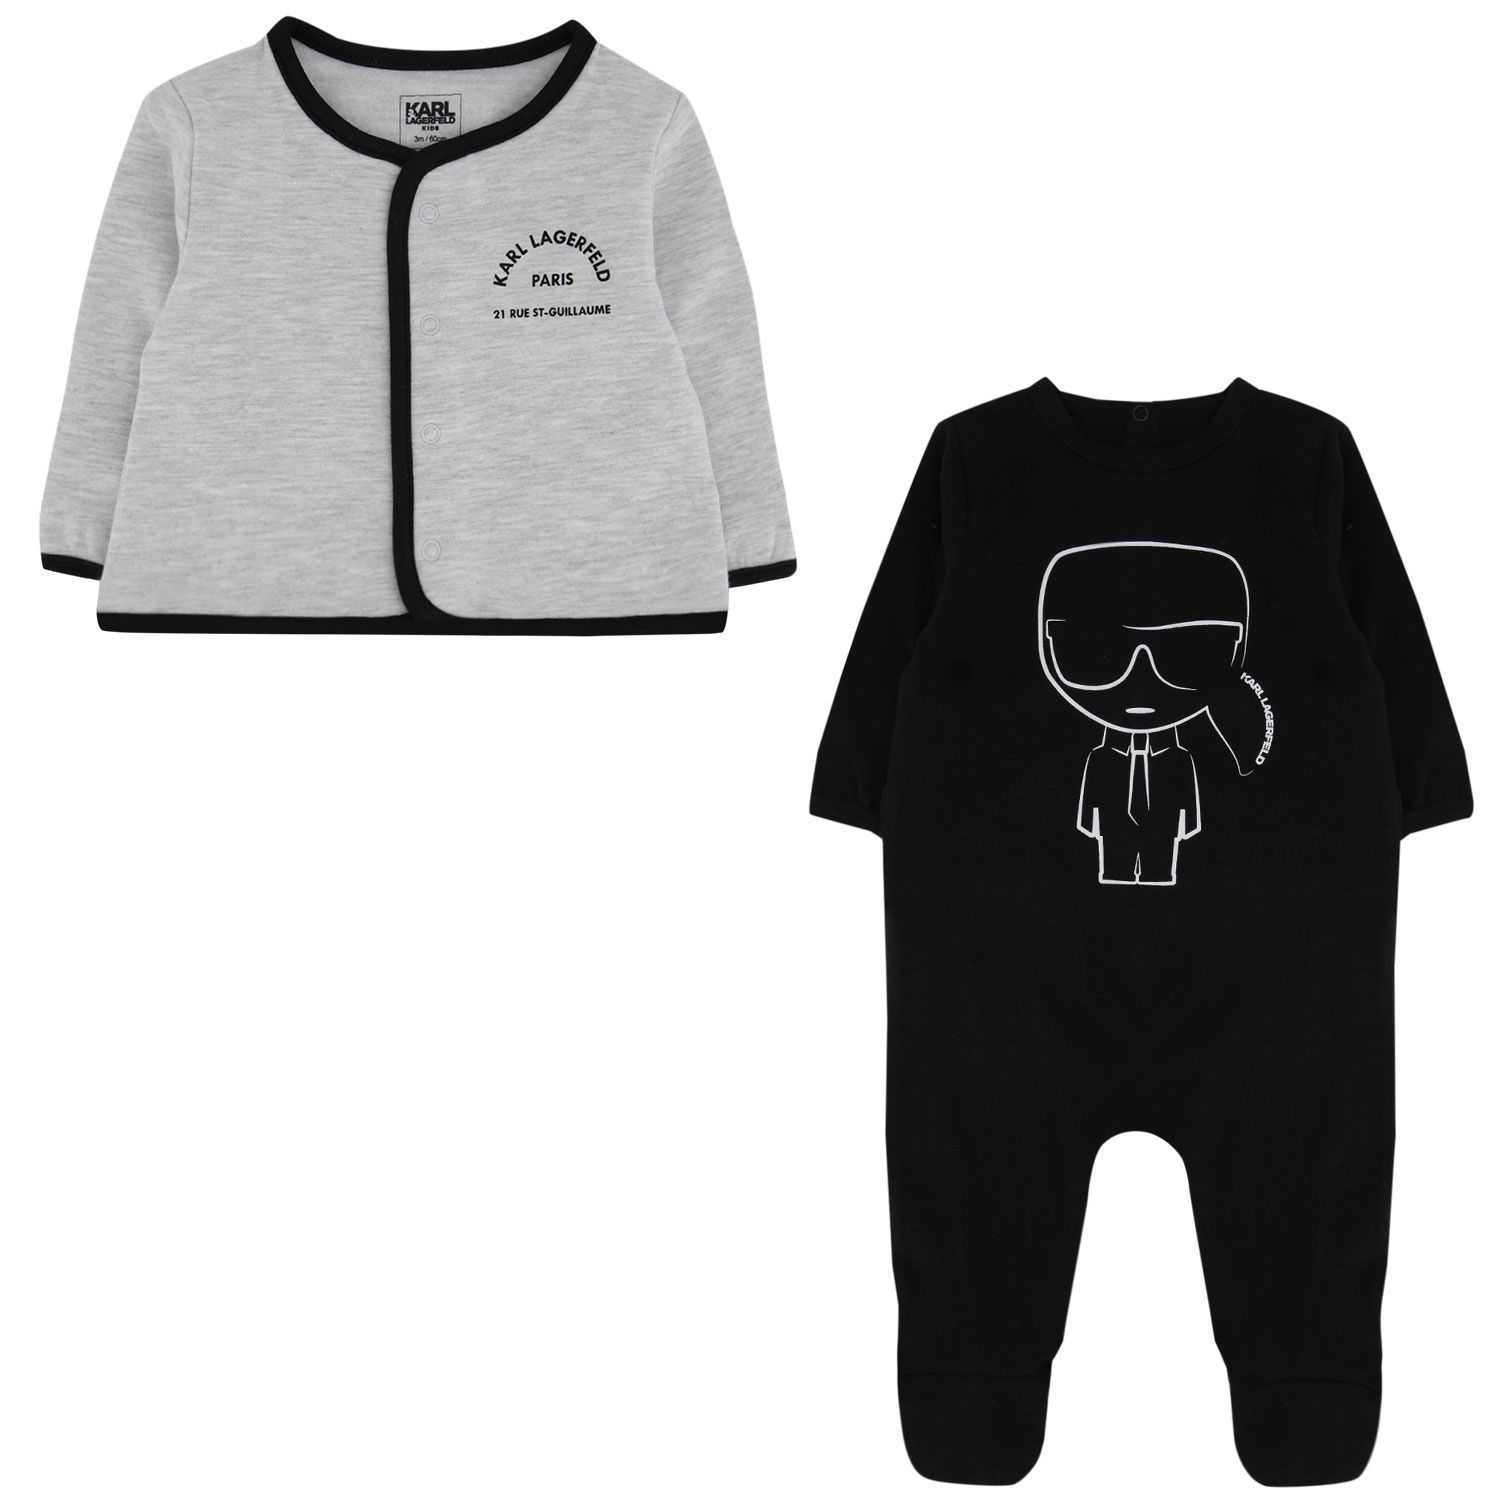 Picture of Karl Lagerfeld Z98066 baby playsuit black